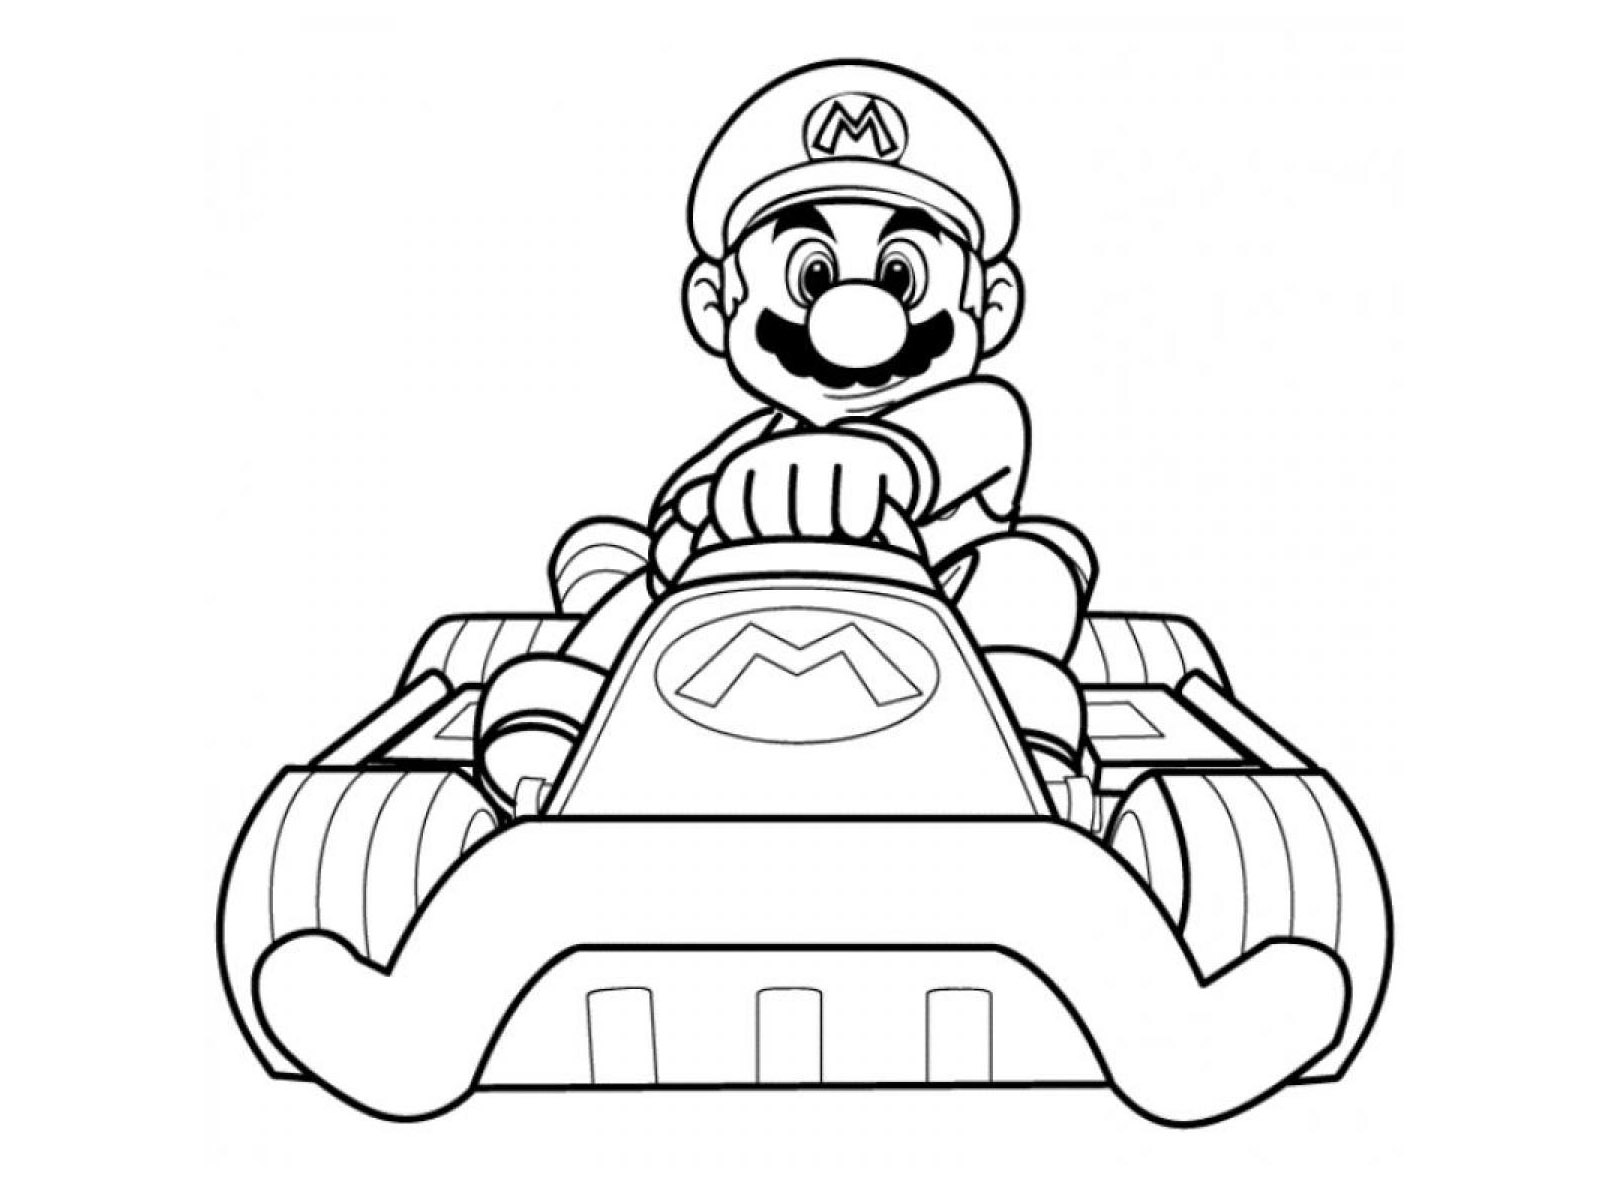 mario kart free to color for kids - mario kart kids